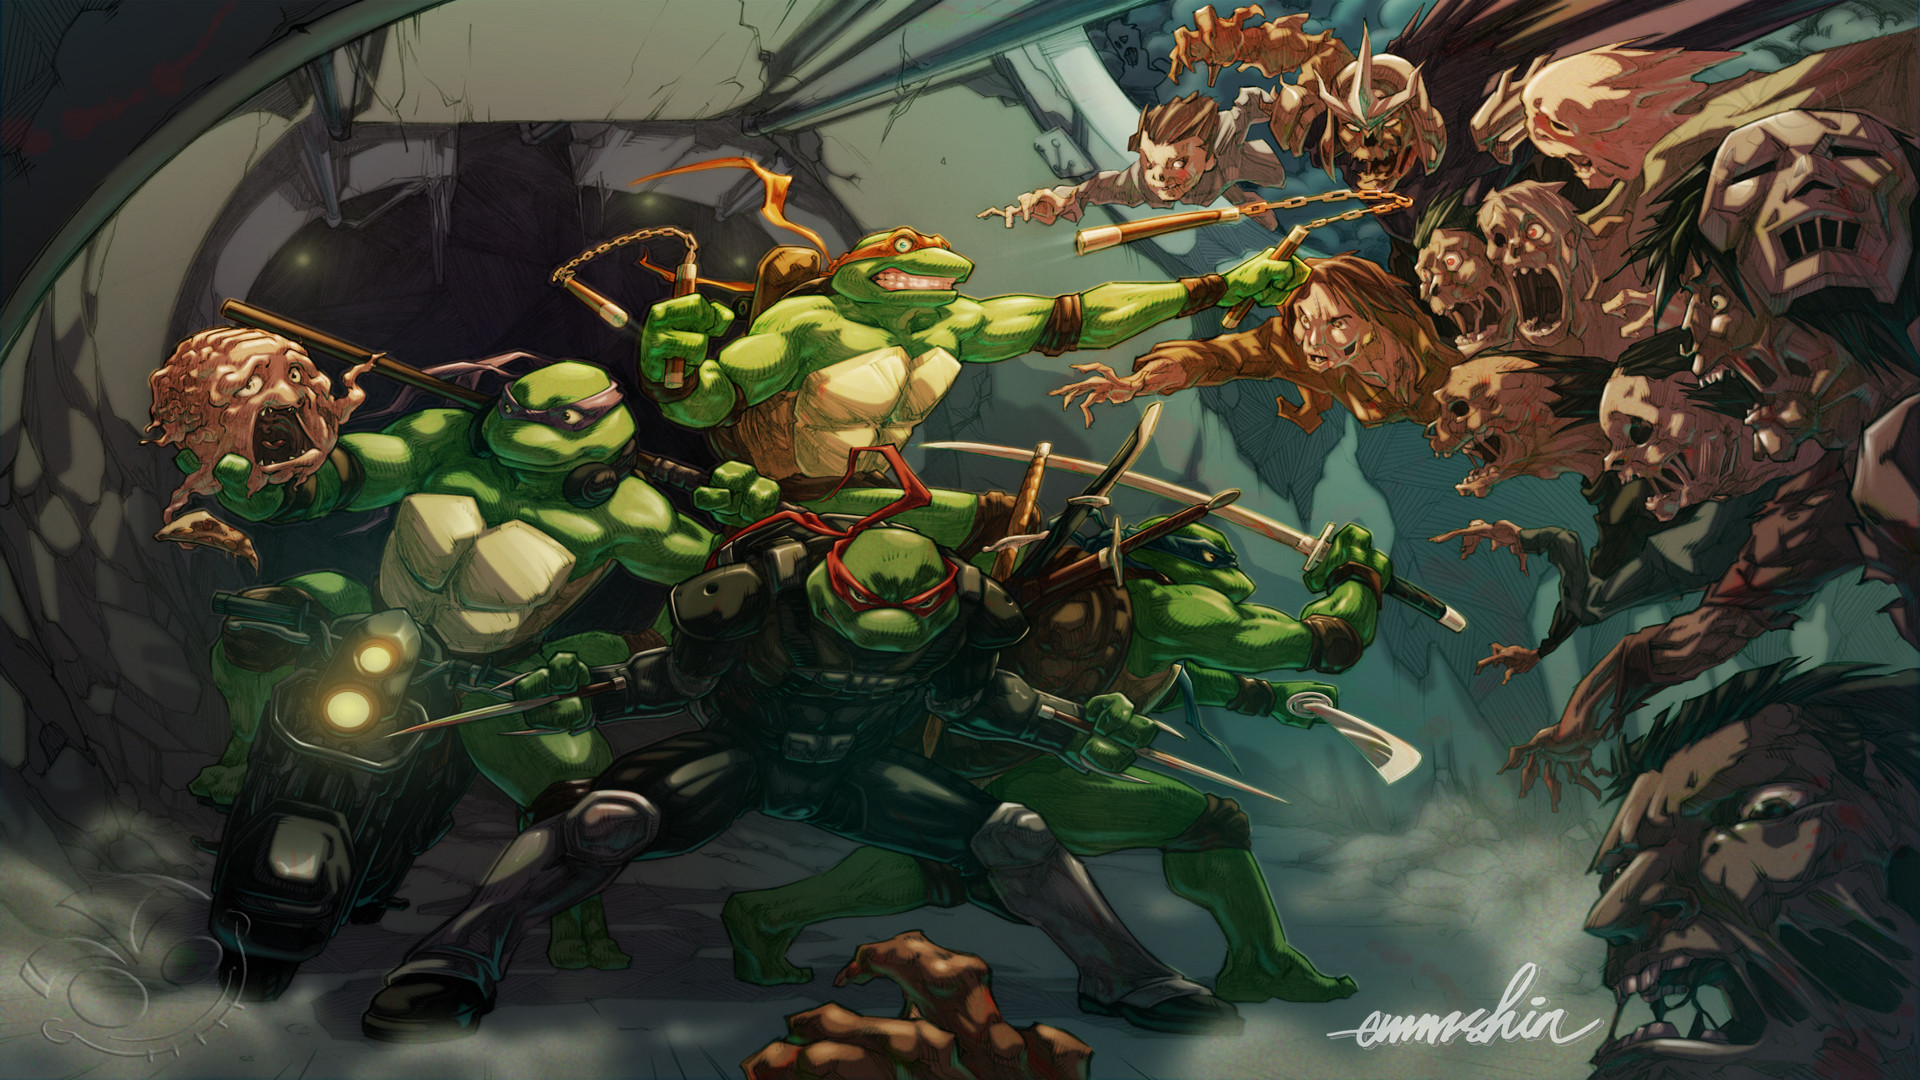 1920x1080 Wallpapers X Hd Tmnt Zombie Apocalypse